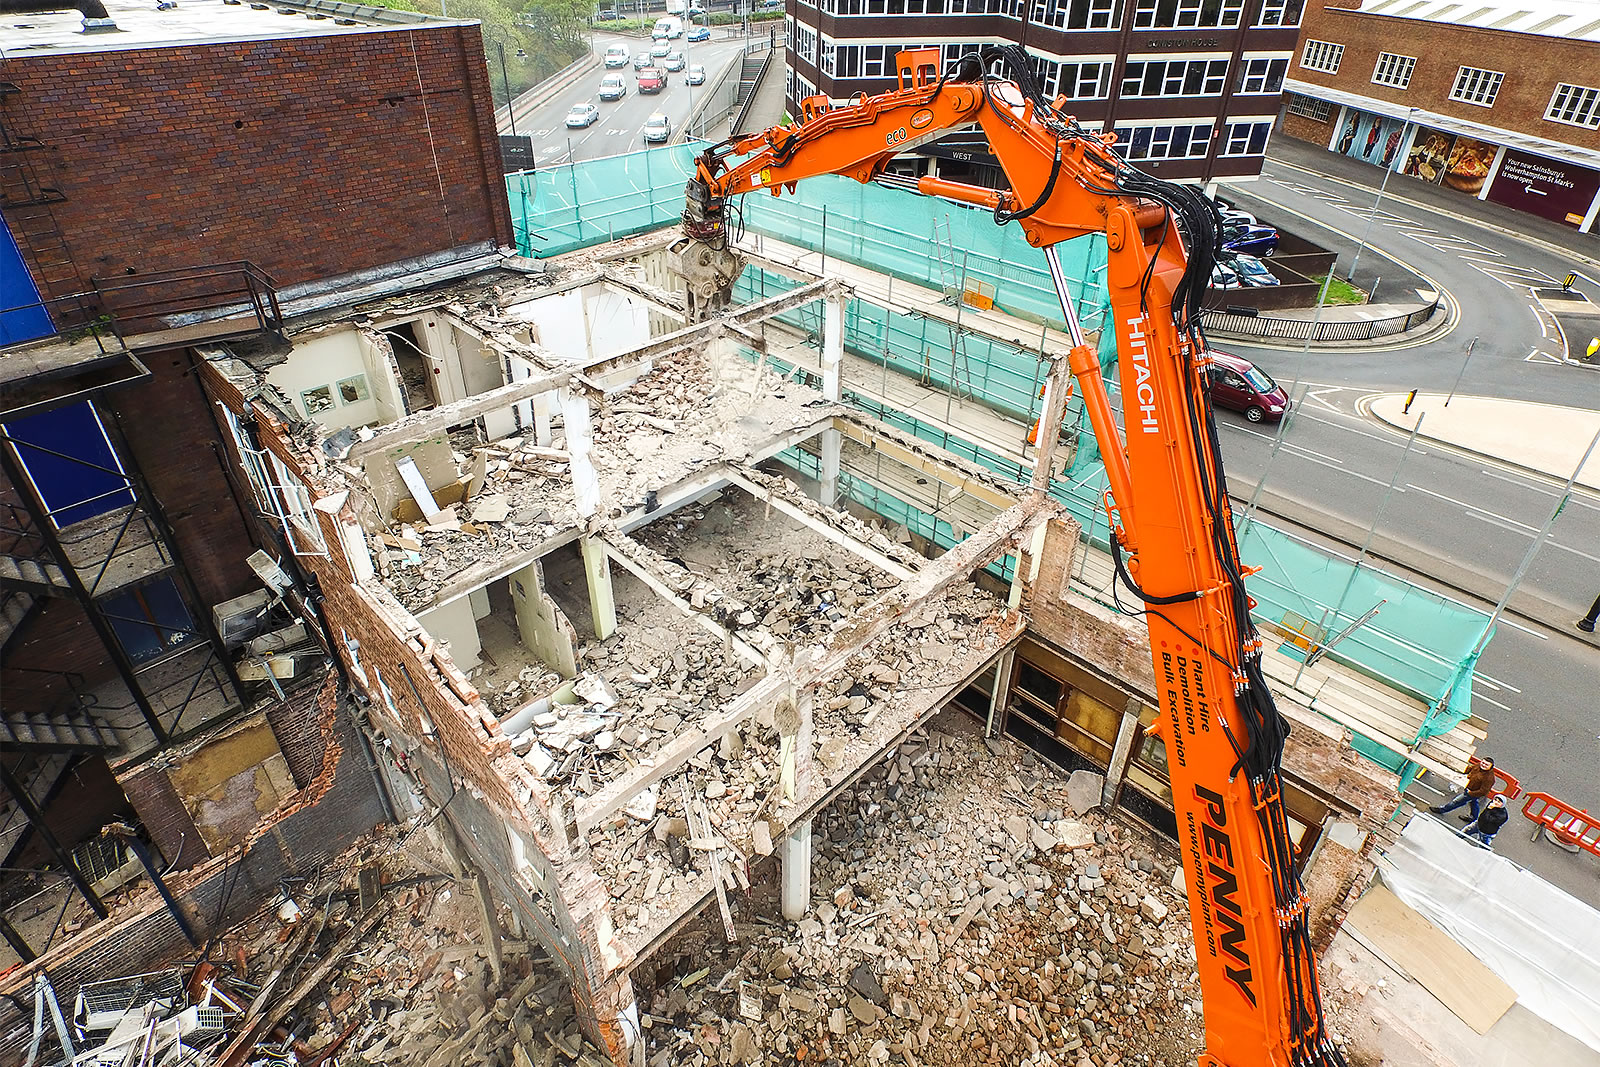 Hitachi ZX350LC-5 high-reach demolition excavator demolishing building